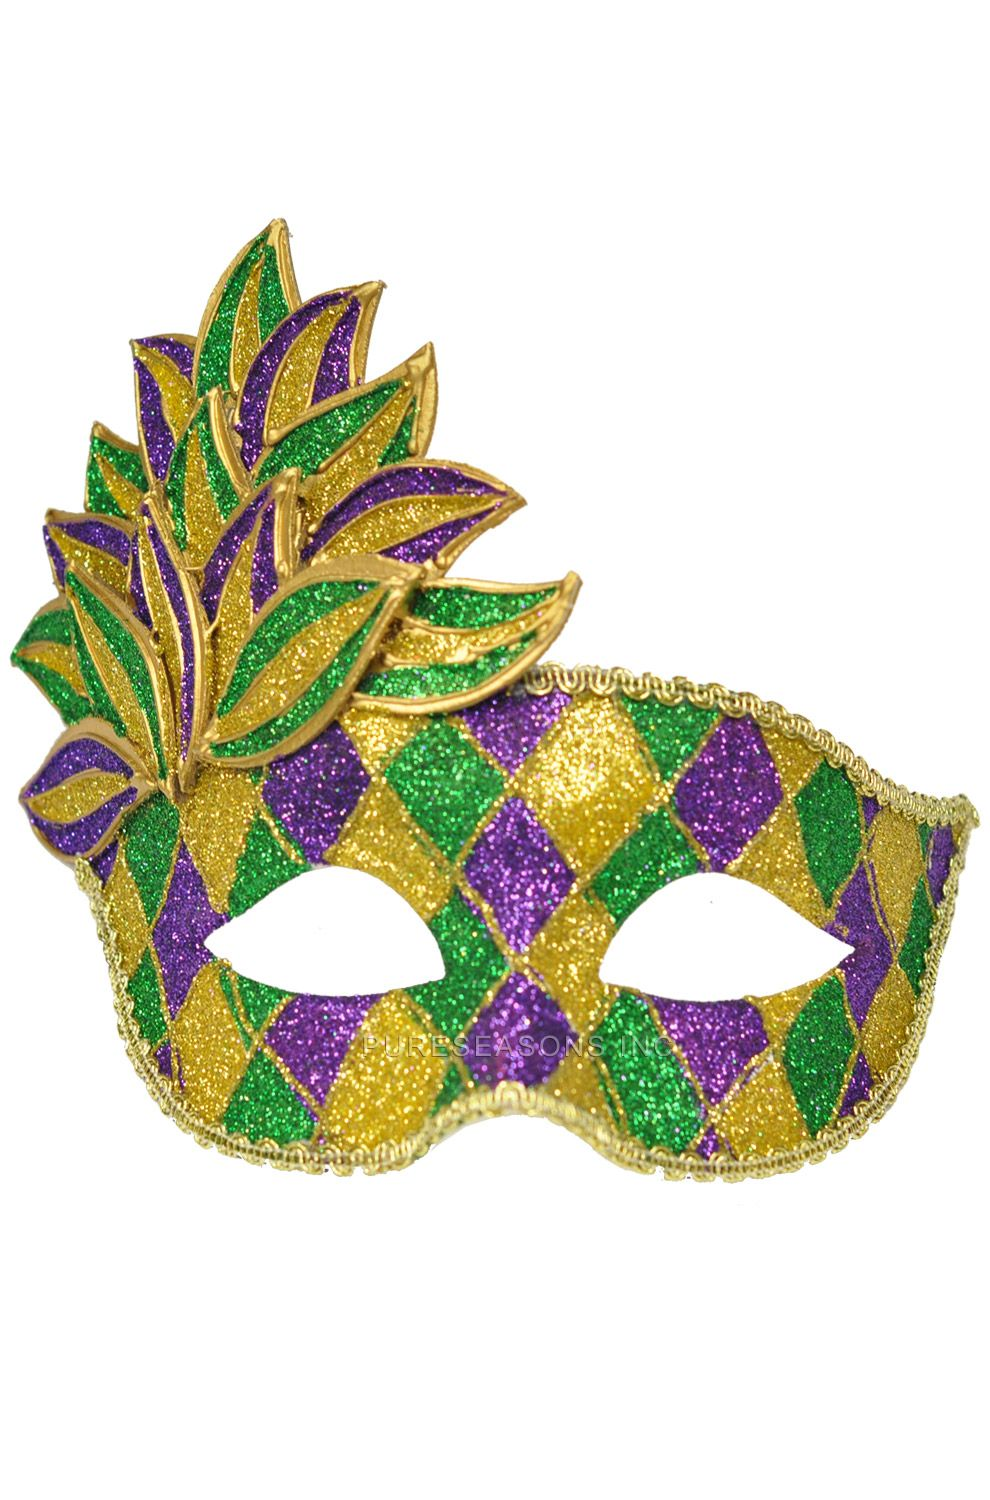 Mardi Gras Leaf Adult Mask | Pinterest | Mardi gras, Masking and Leaves